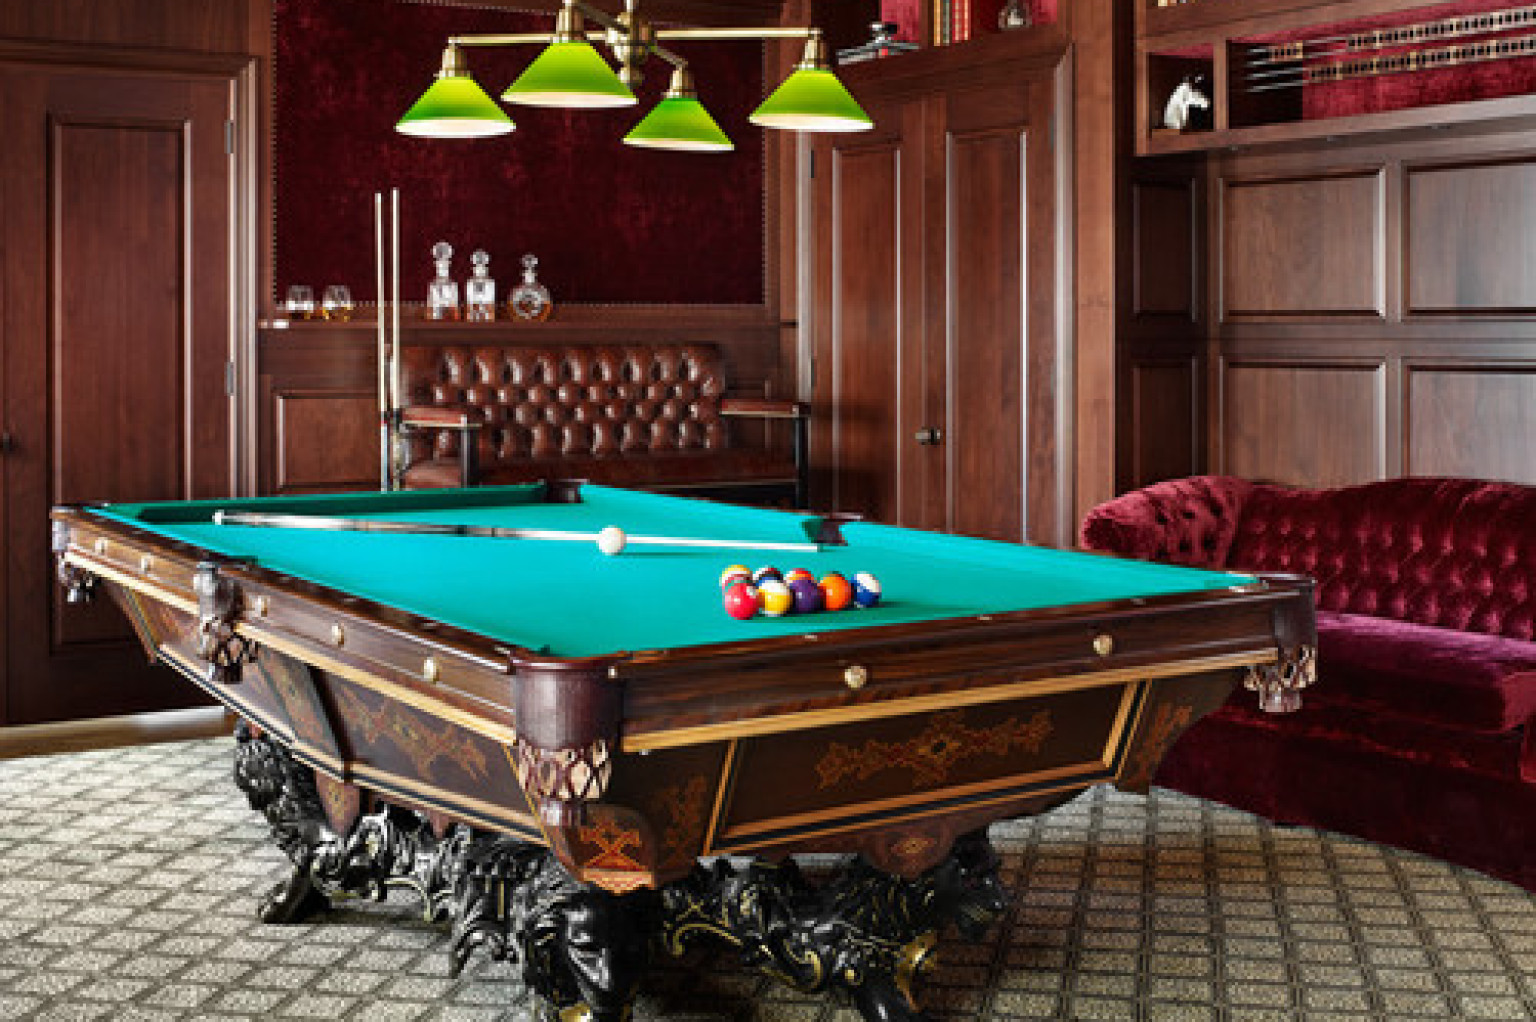 Superieur 15 Homes With Amazing Pool Tables That Are Anything But An Eyesore (PHOTOS)  | HuffPost